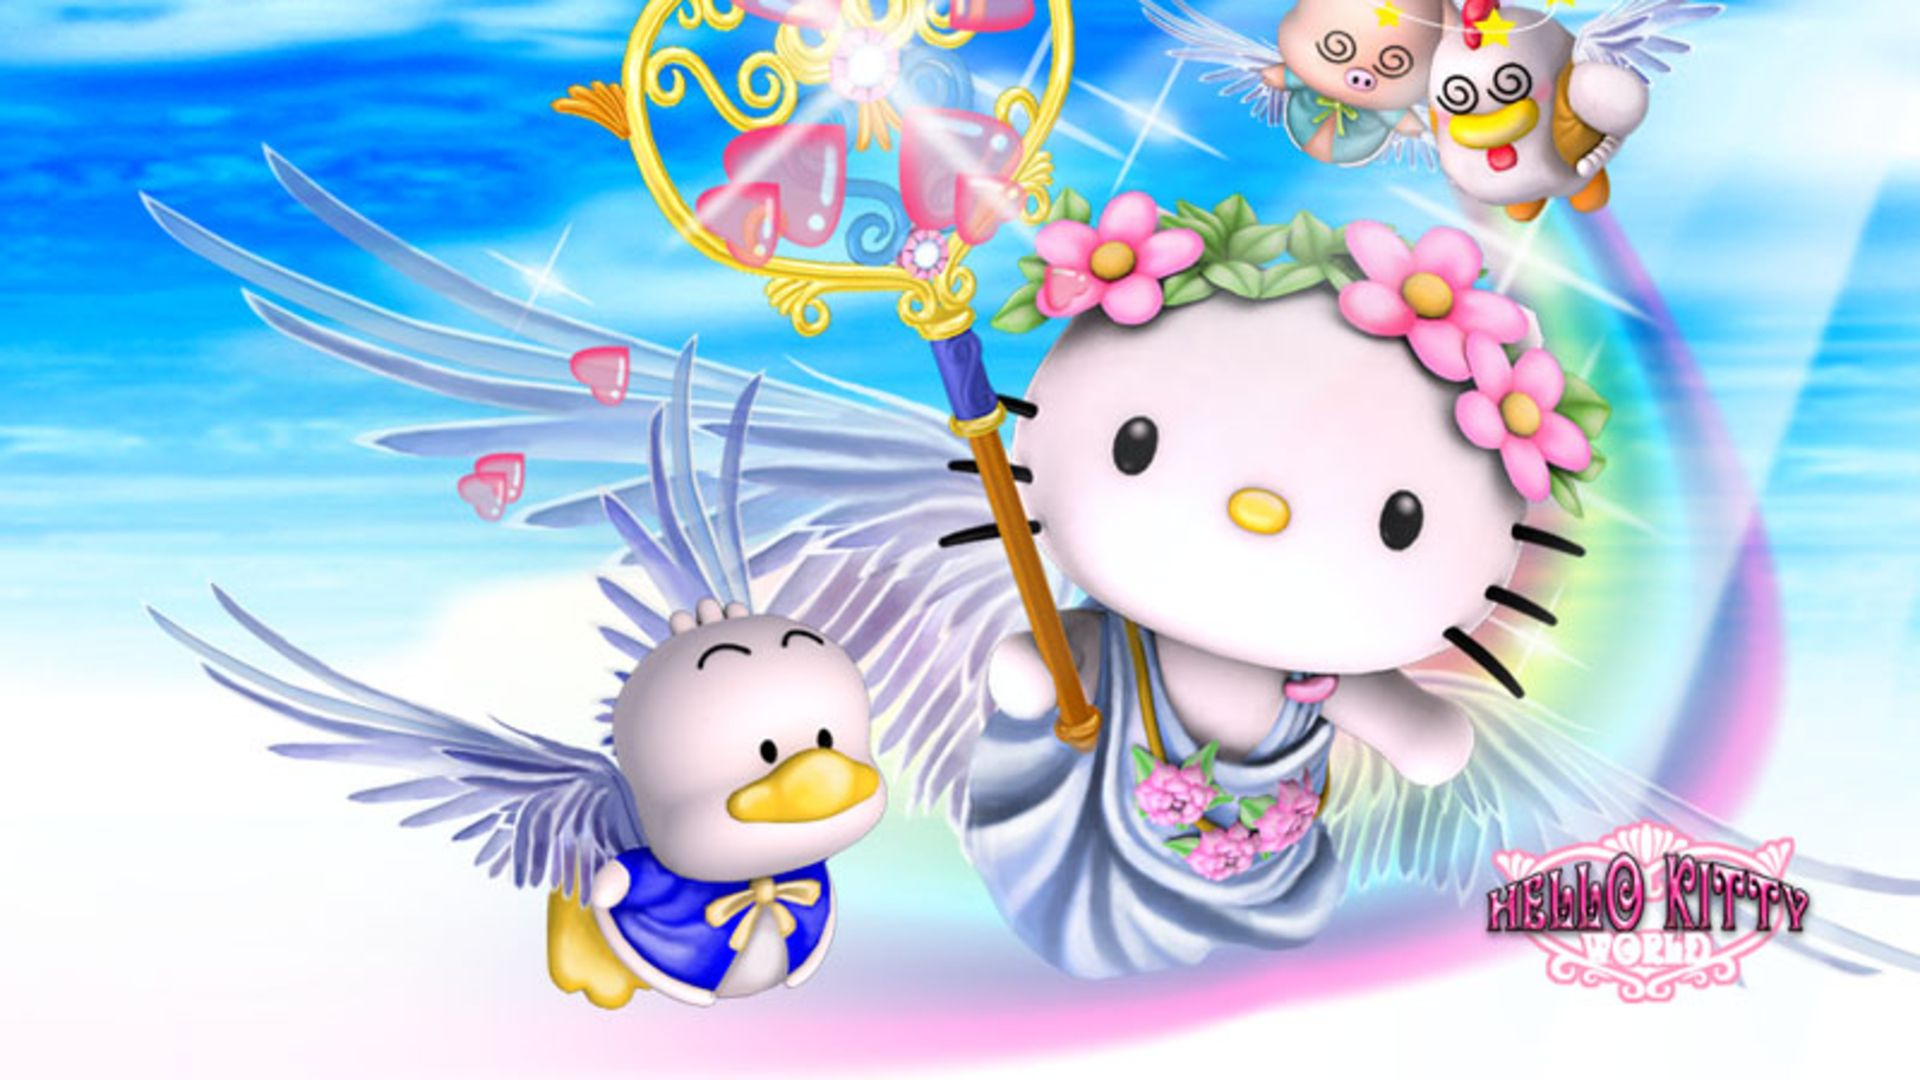 1920x1080 Hello Kitty 3D wallpaper - 1193808